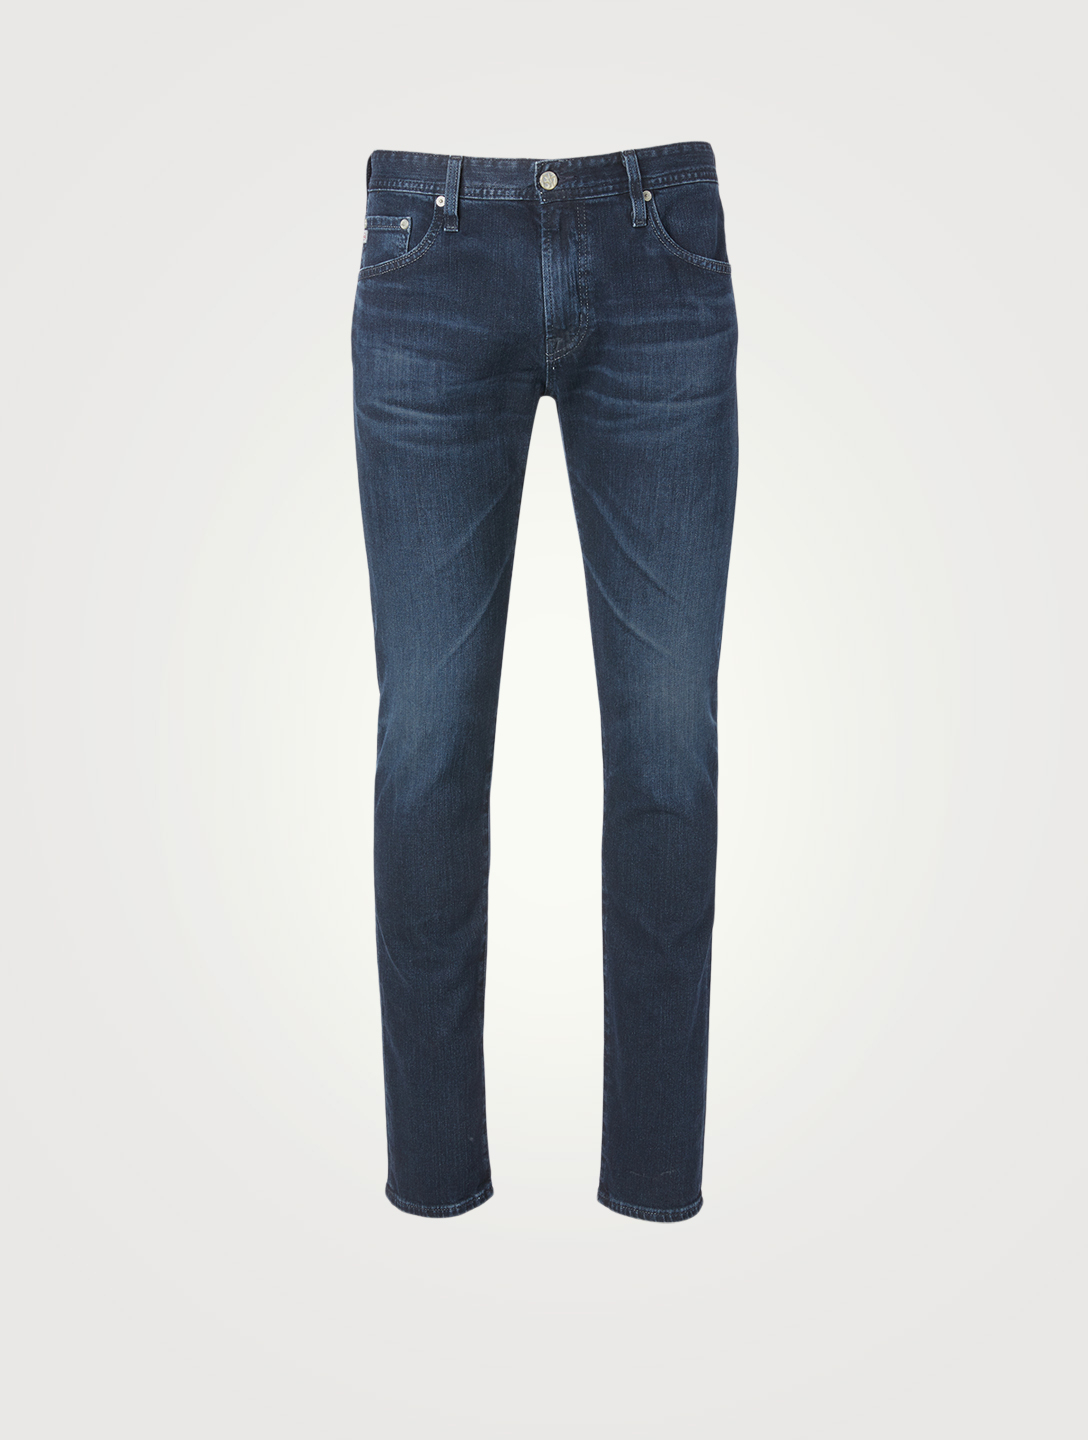 AG Dylan Slim Jeans Men's Blue